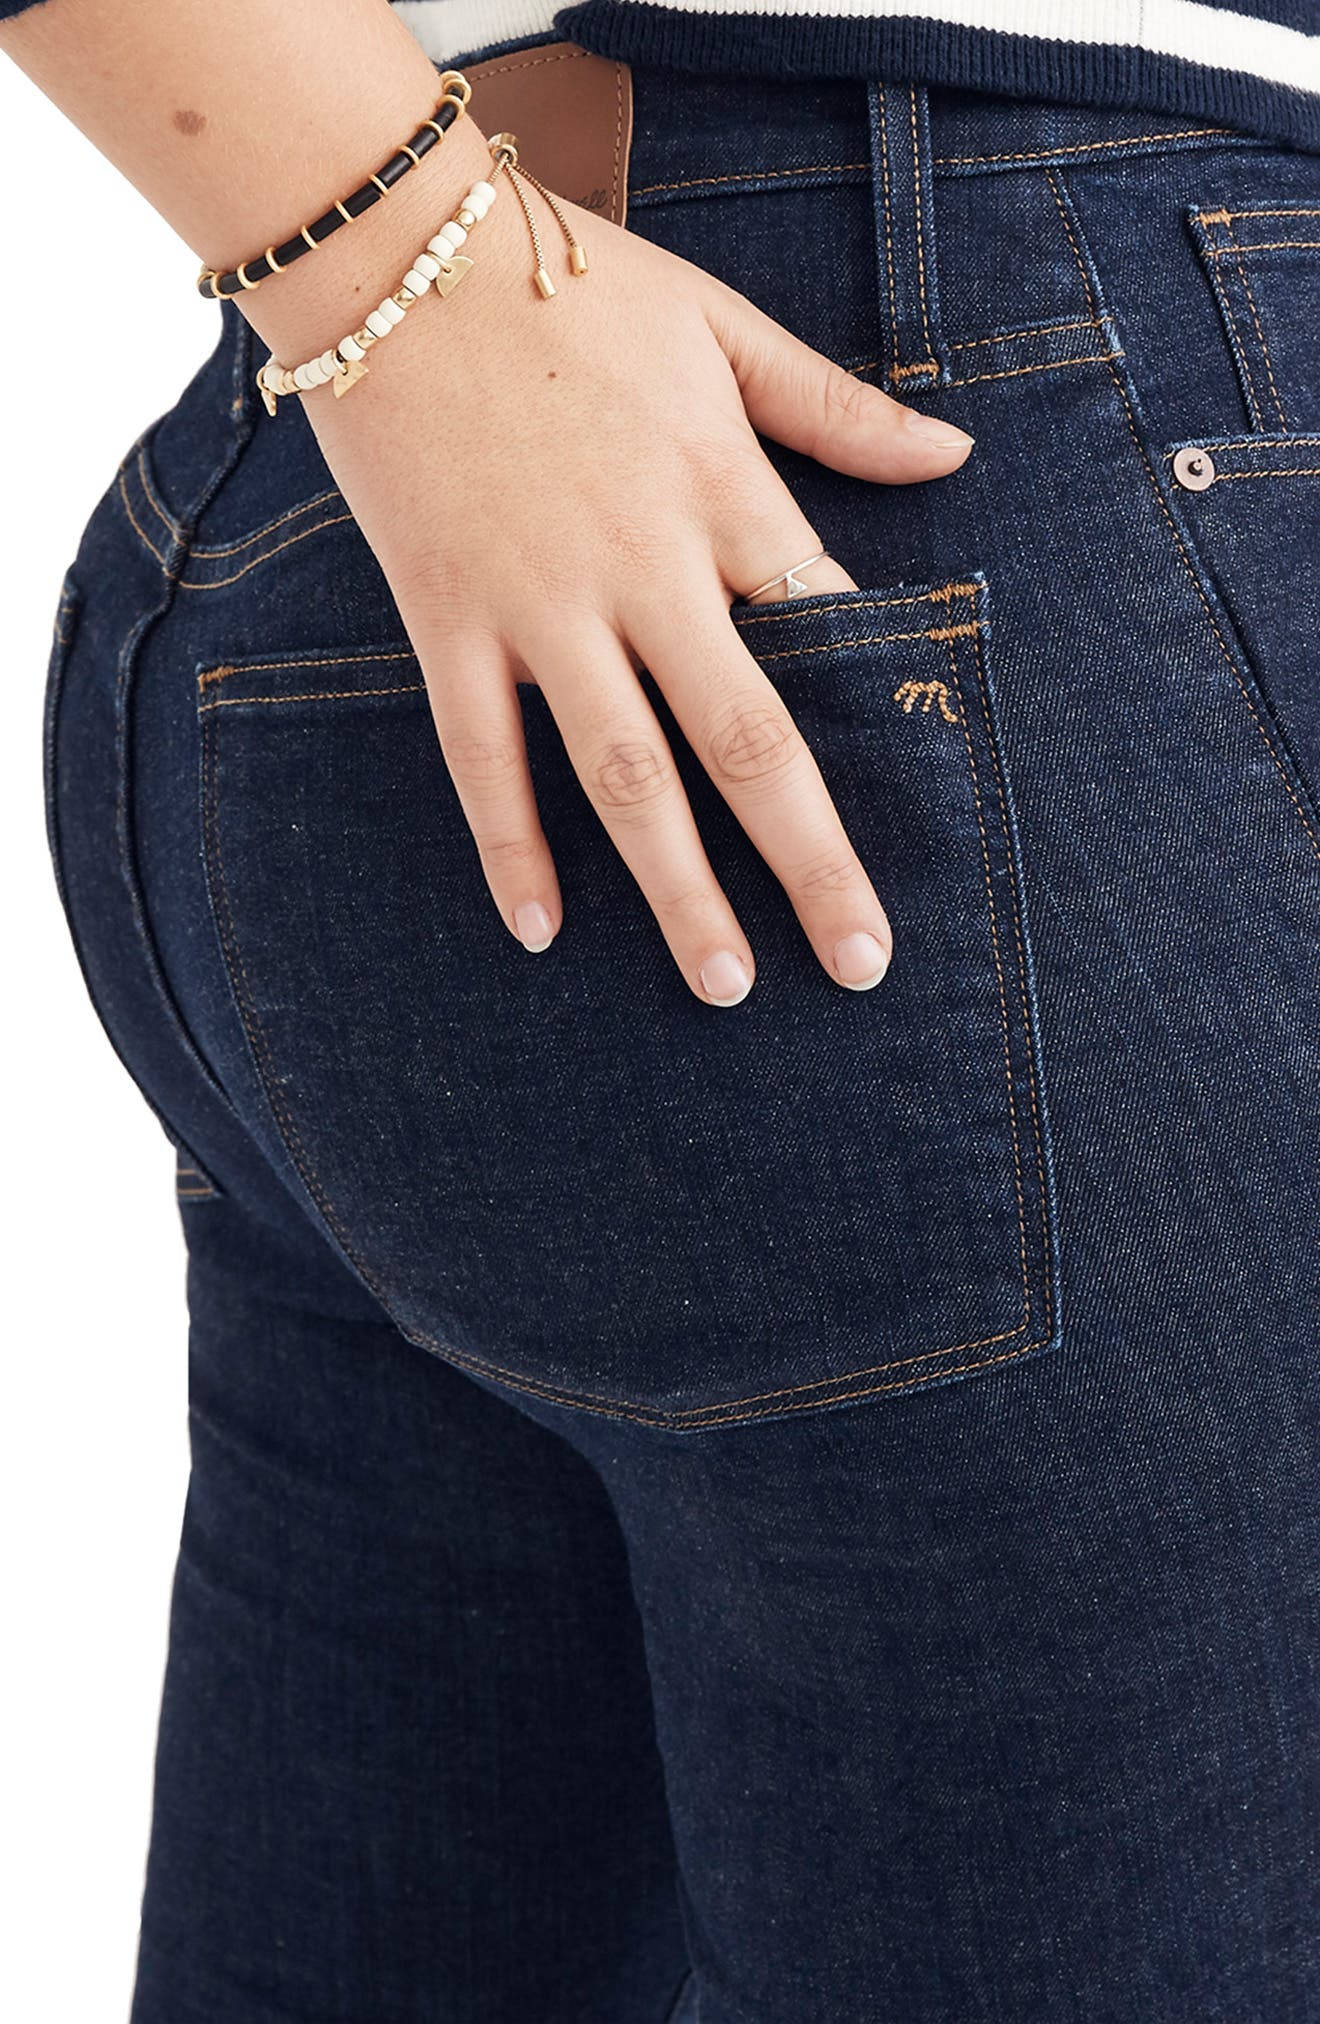 Curvy High Waist Skinny Jeans,                             Alternate thumbnail 10, color,                             LUCILLE WASH